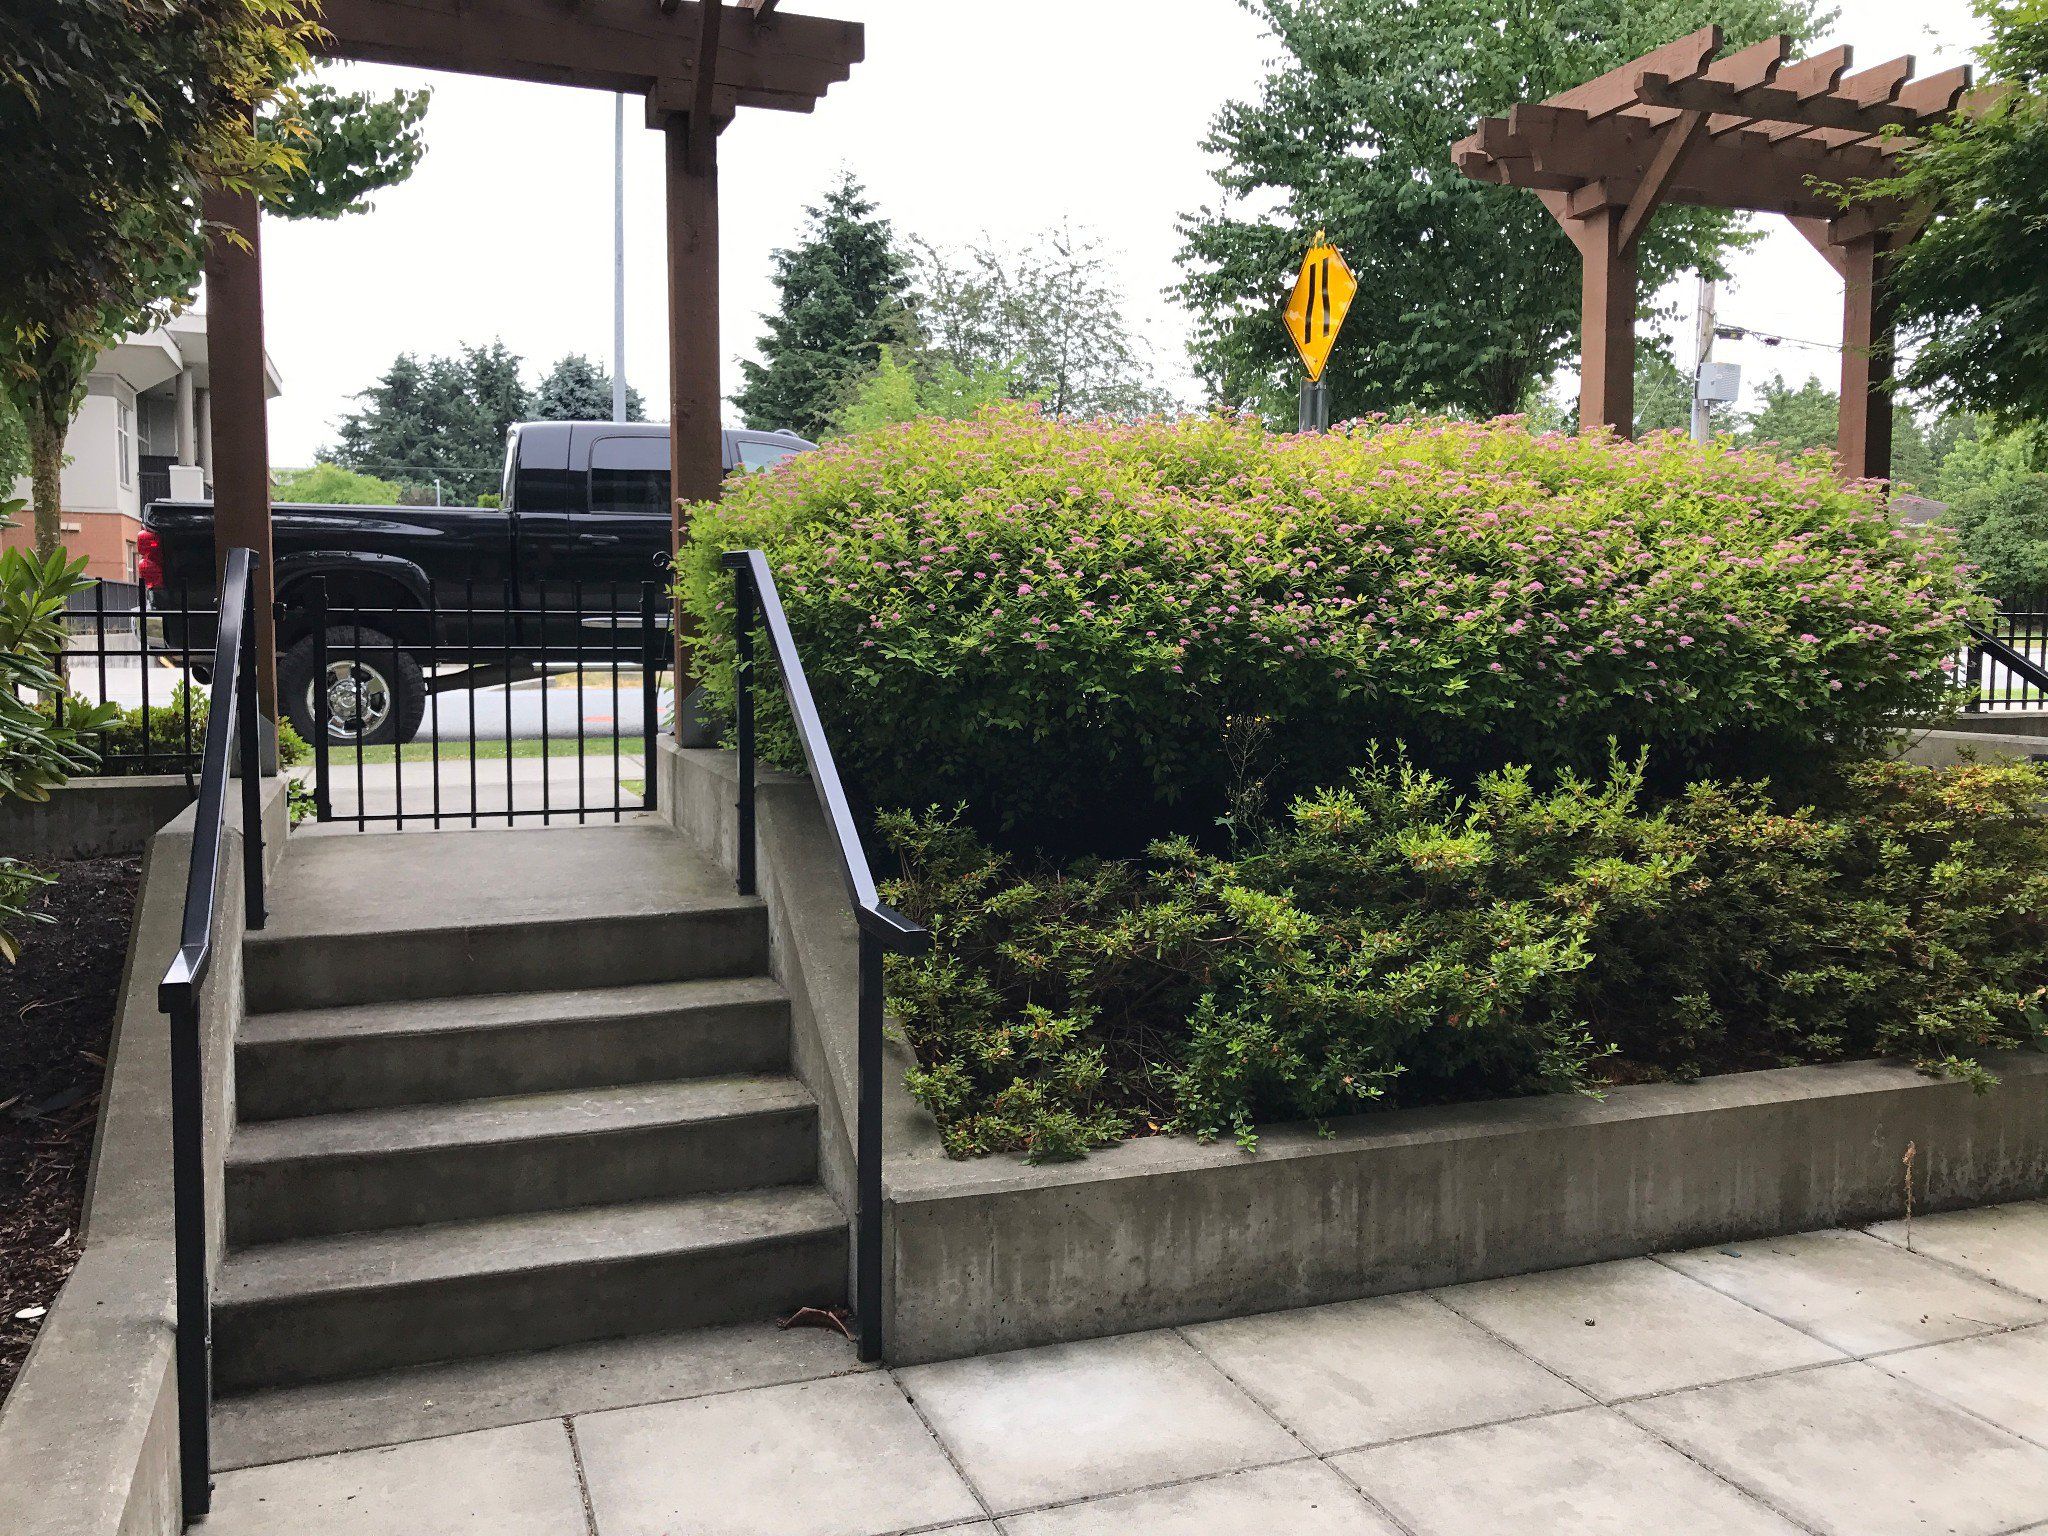 Photo 13: Photos: #114 33539 Holland Ave in Abbotsford: Central Abbotsford Condo for rent